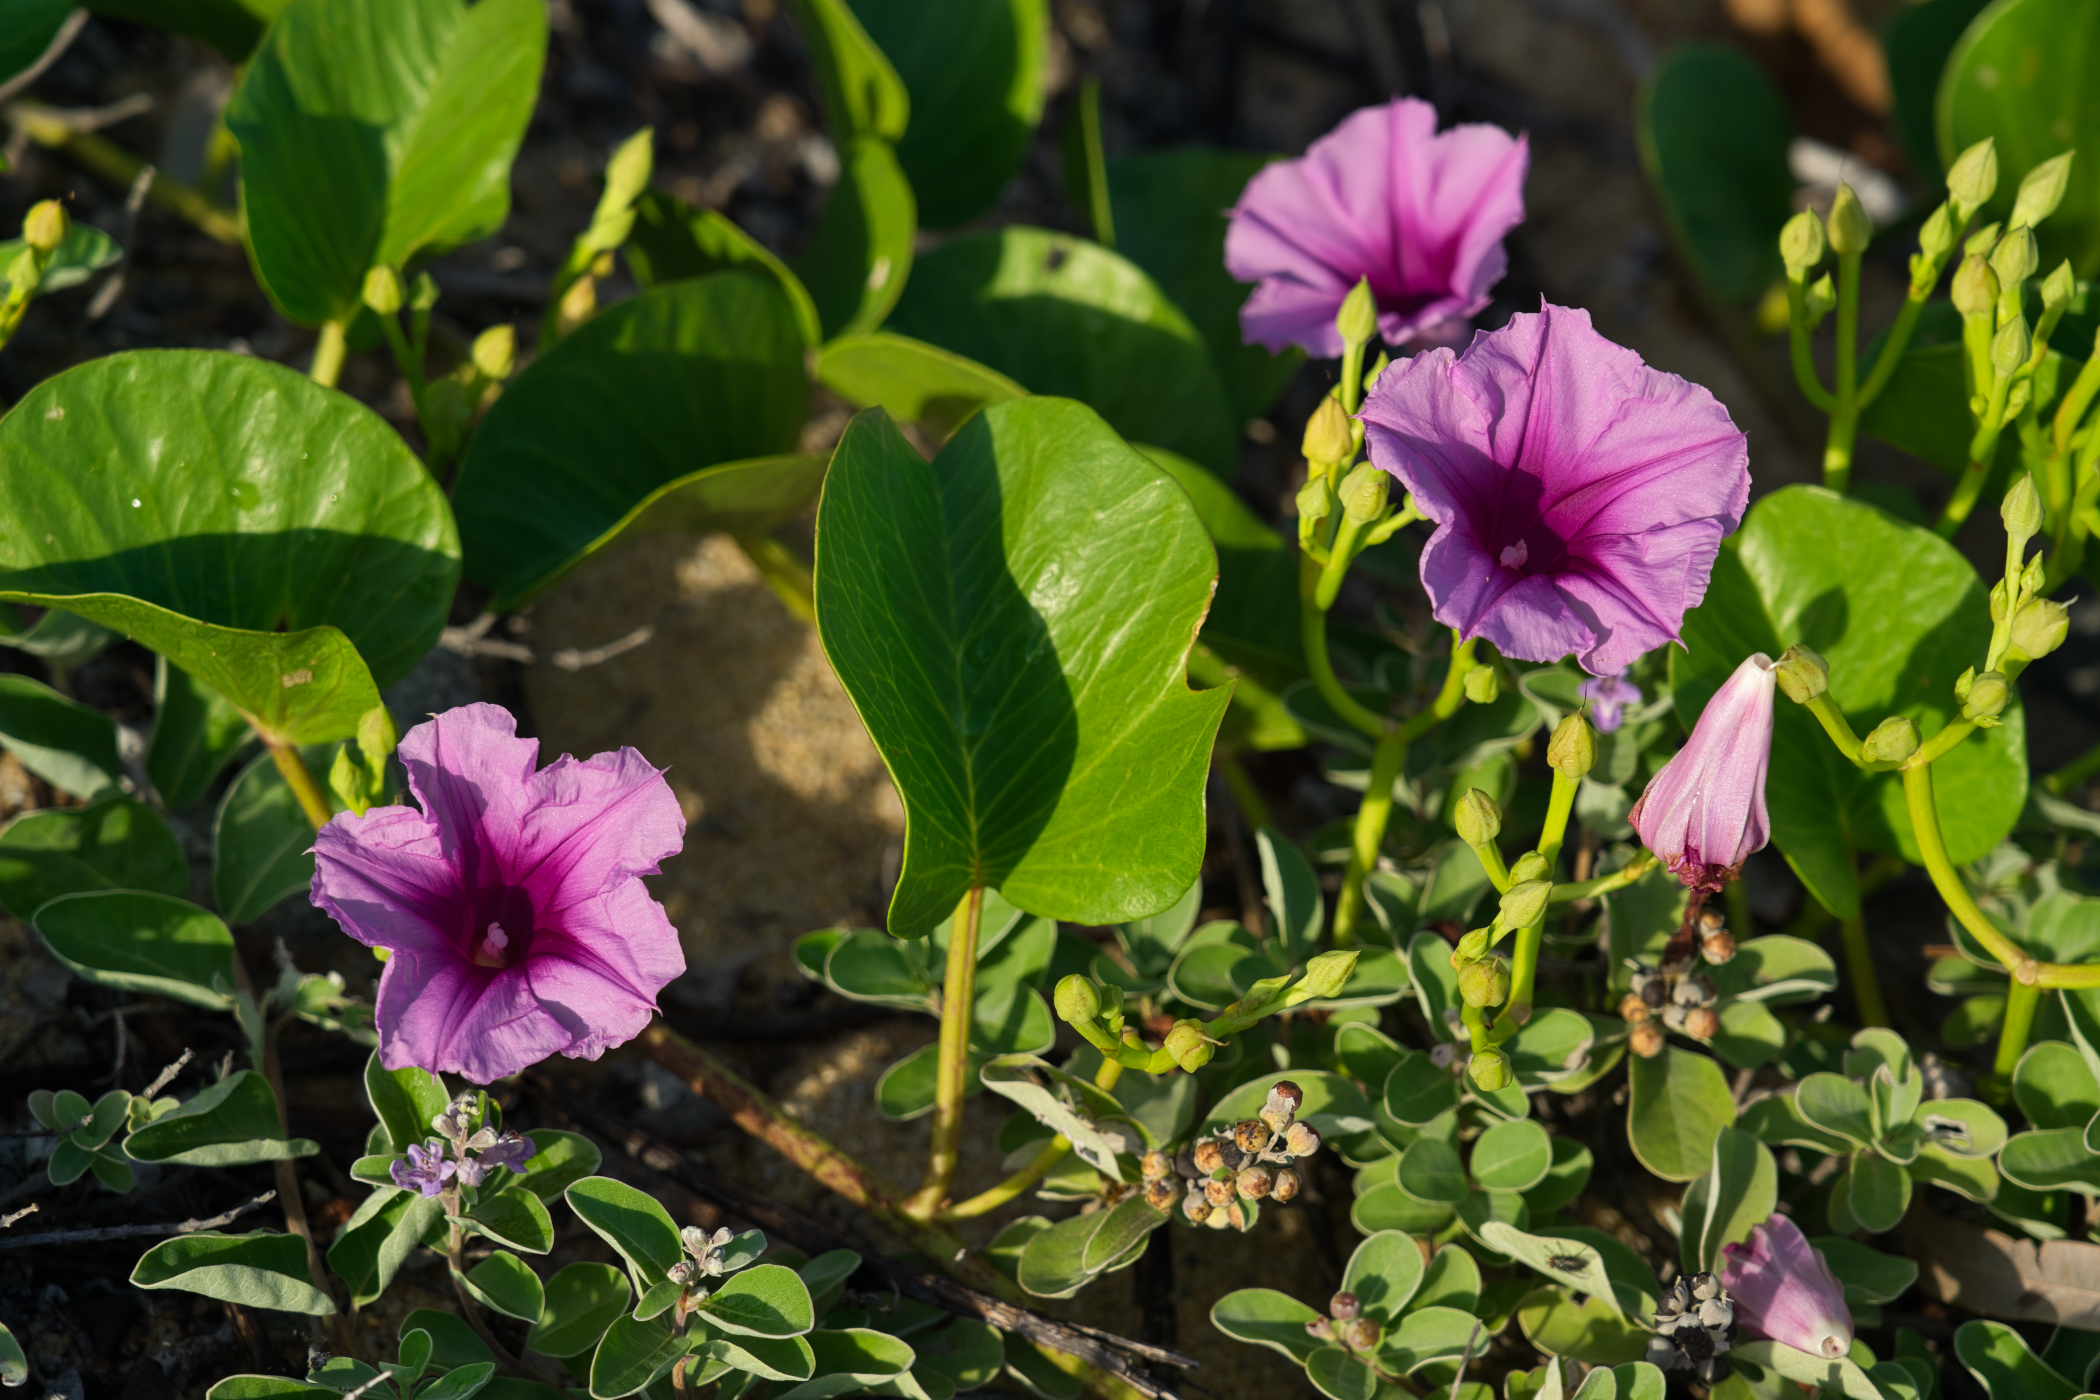 In January 2019 there were a lot of these flowers sprouting from a creeper along the shoreline.